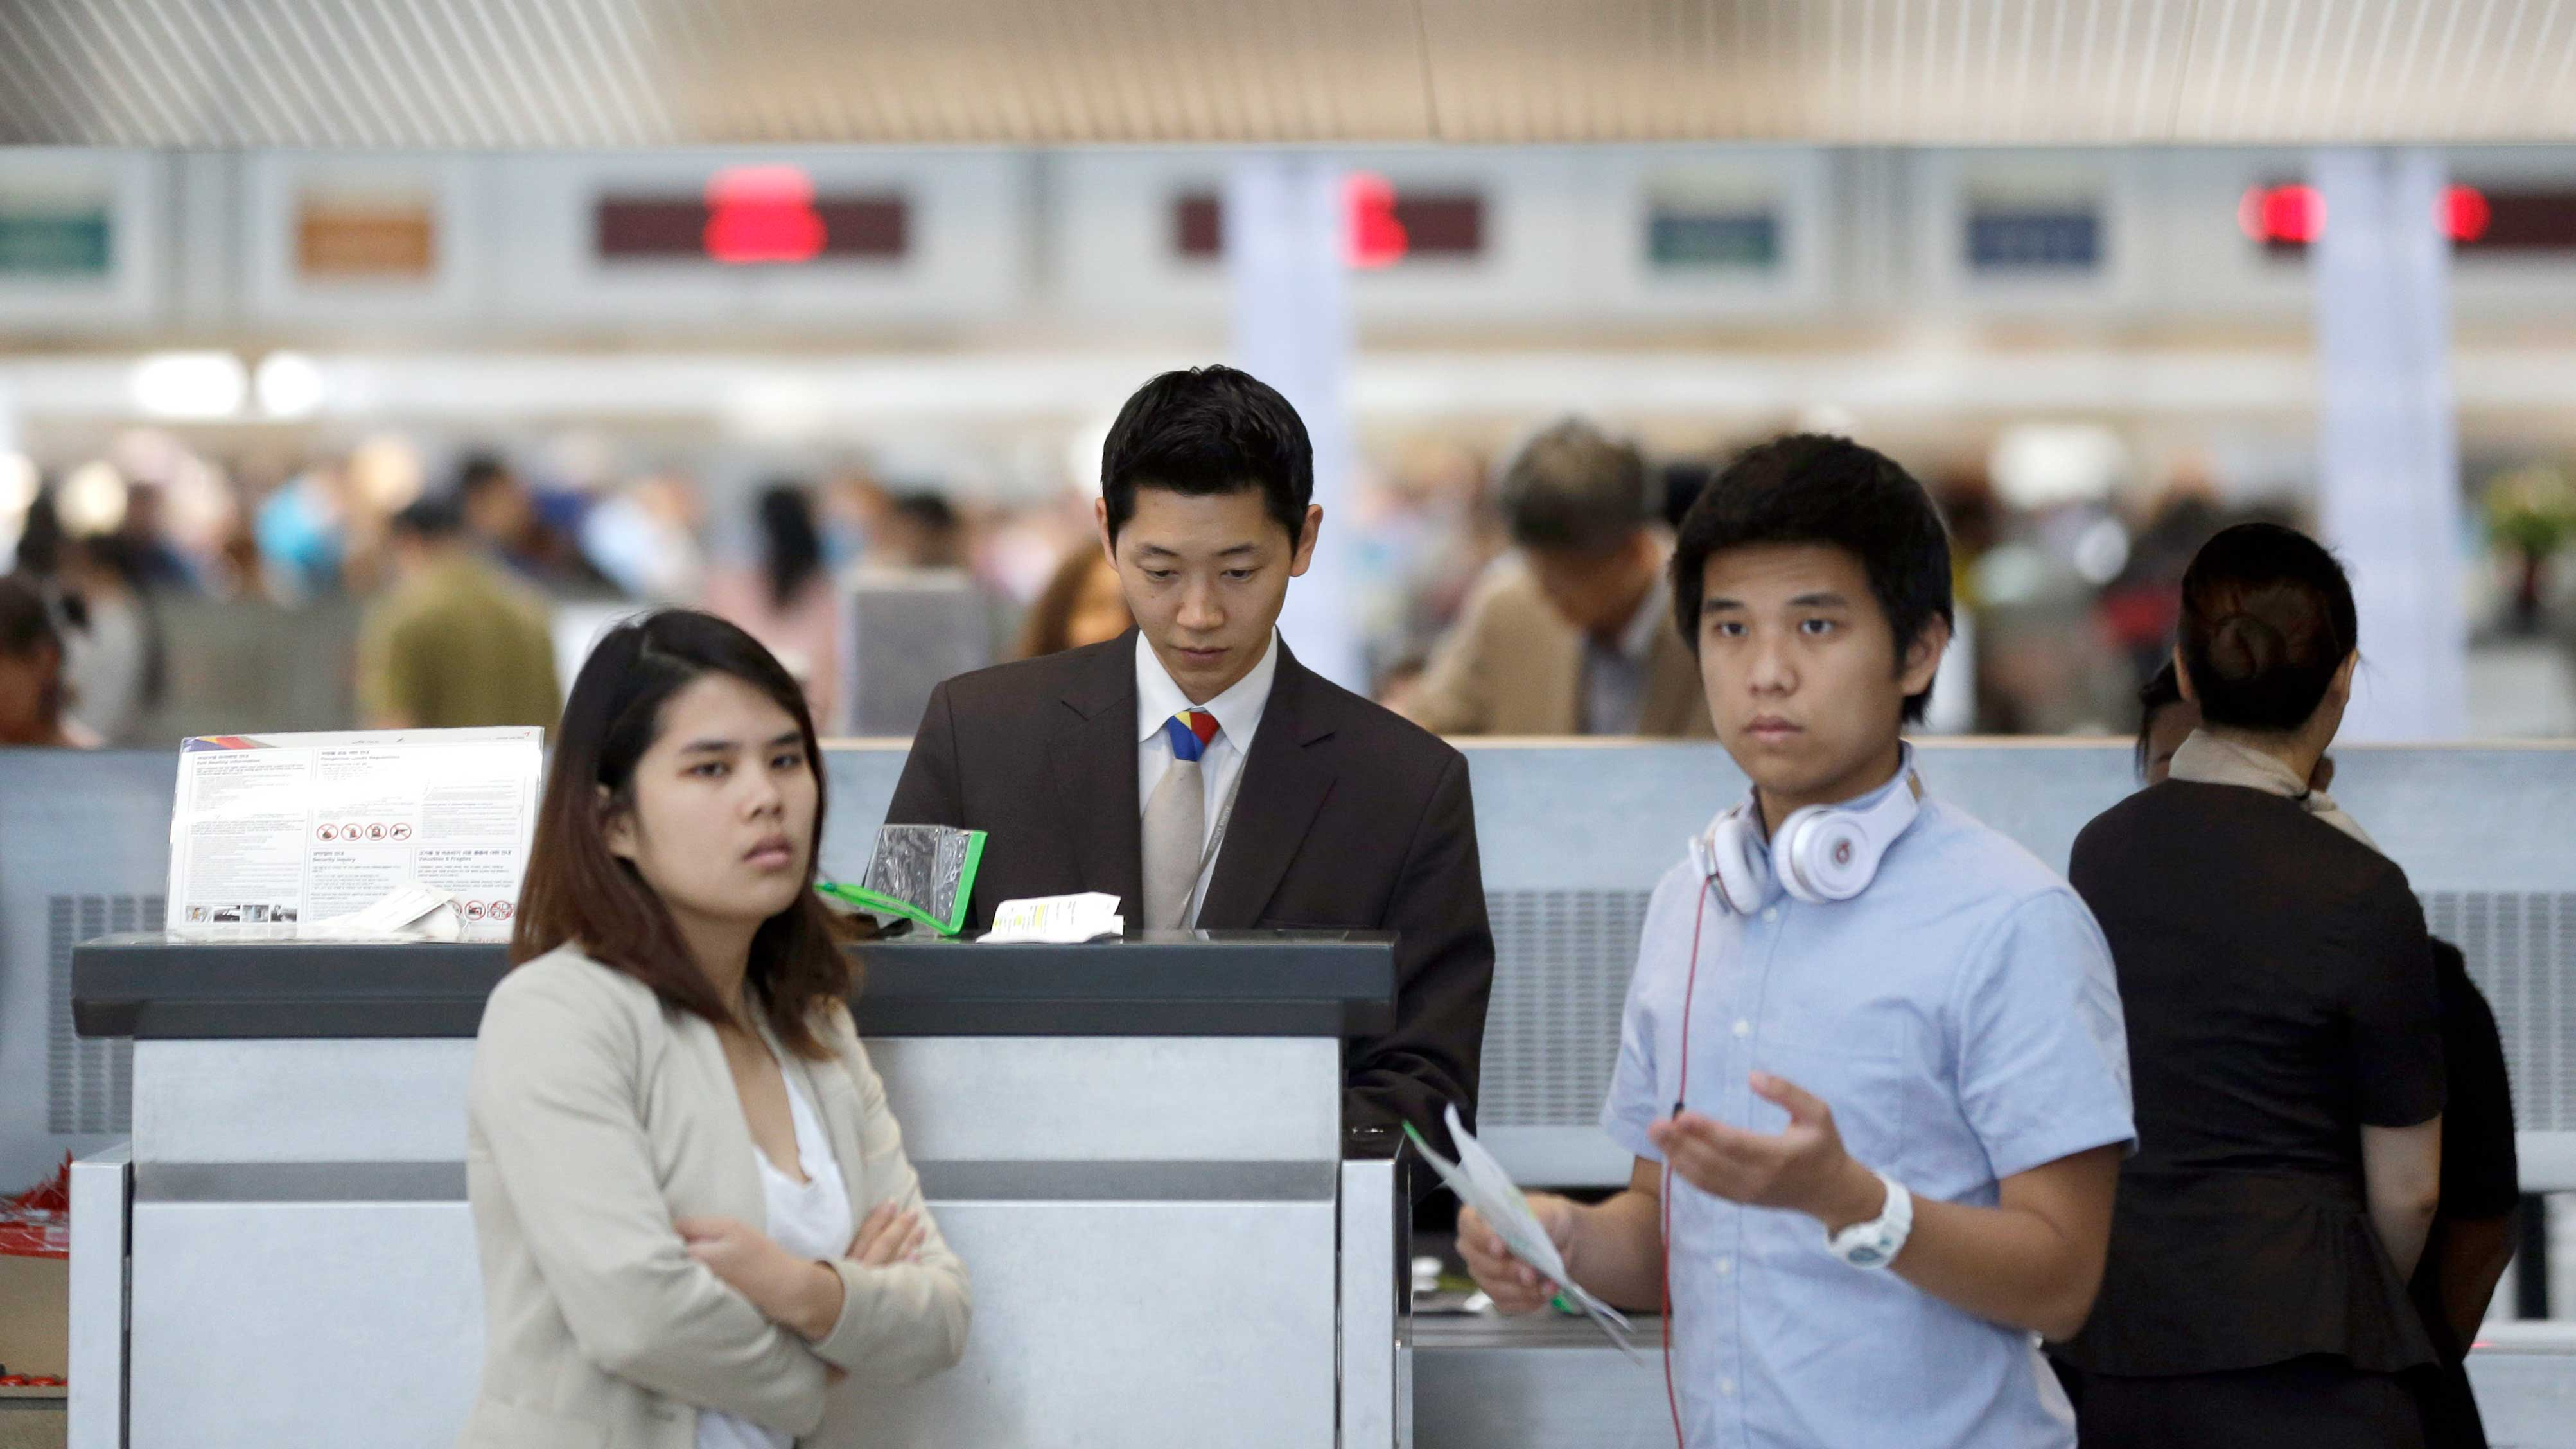 Passengers check in at the Asiana Airlines ticket counter at the San Francisco International Airport in San Francisco, Sunday, July 7, 2013